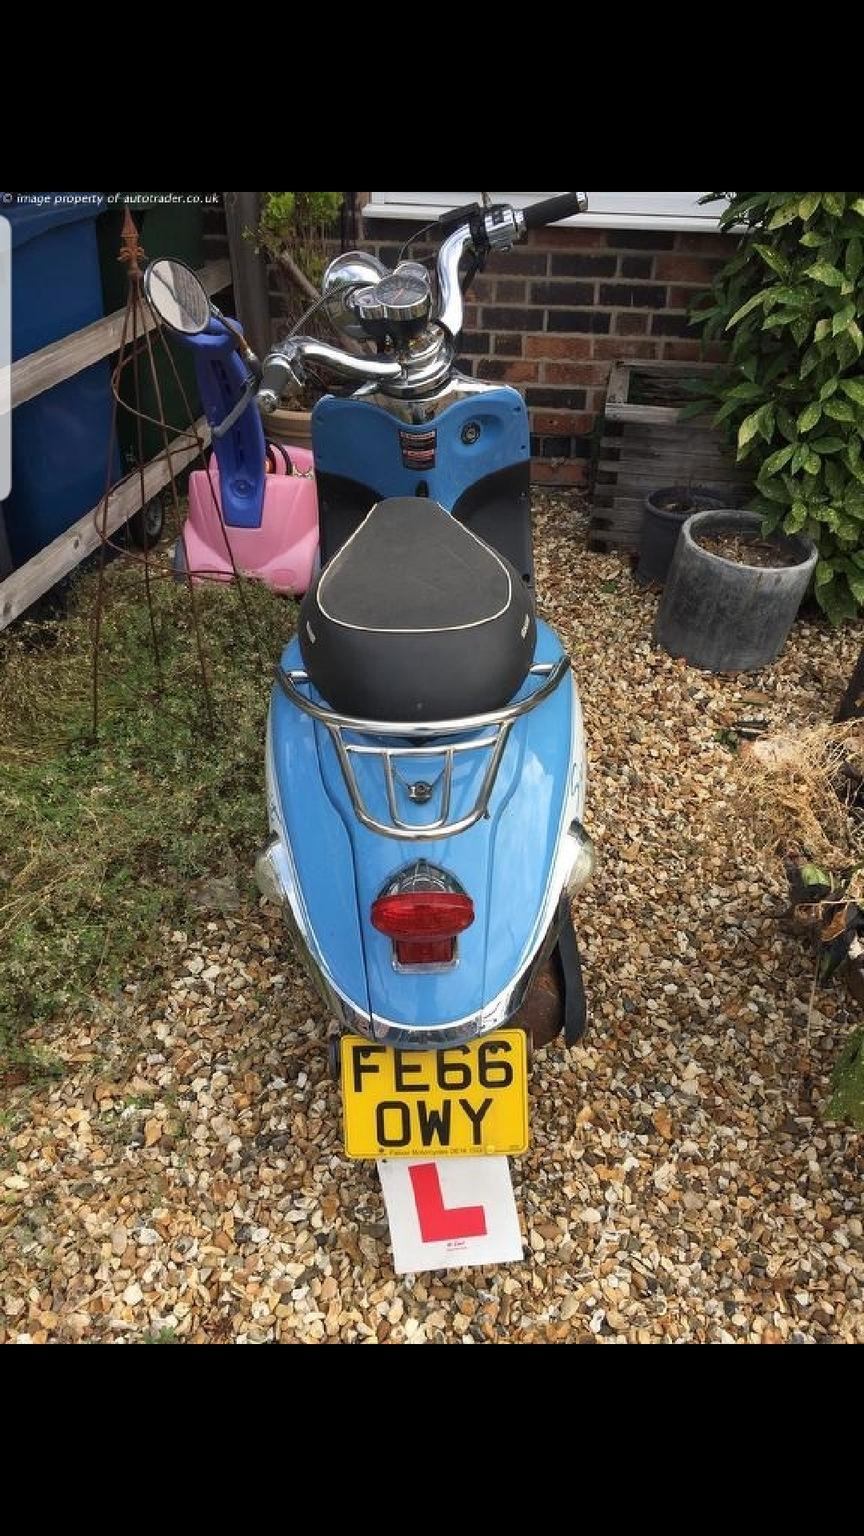 Znen 125cc moped scooter not 50cc px swaps